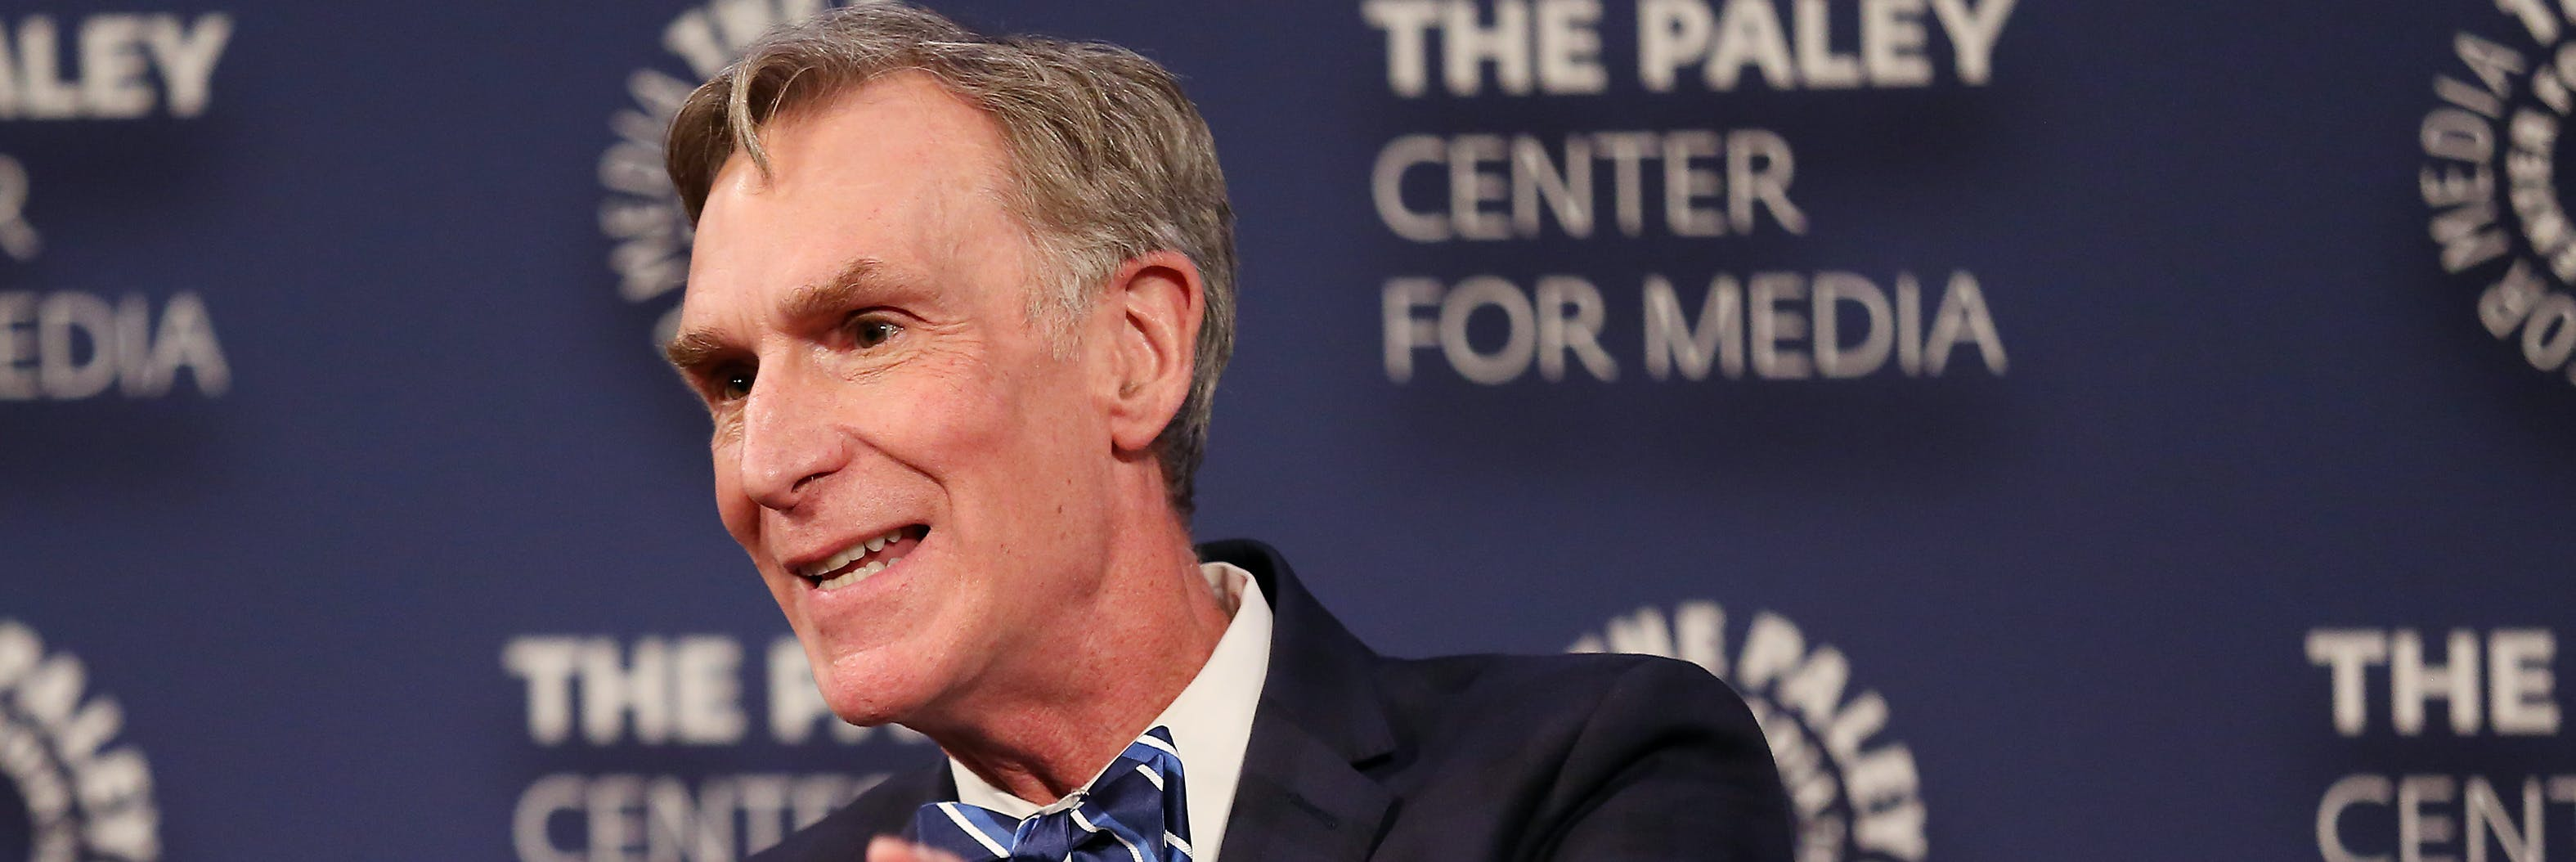 At a Paley Center event on Tuesday, Bill Nye told Inverse that he wanted to see more engineers in office.